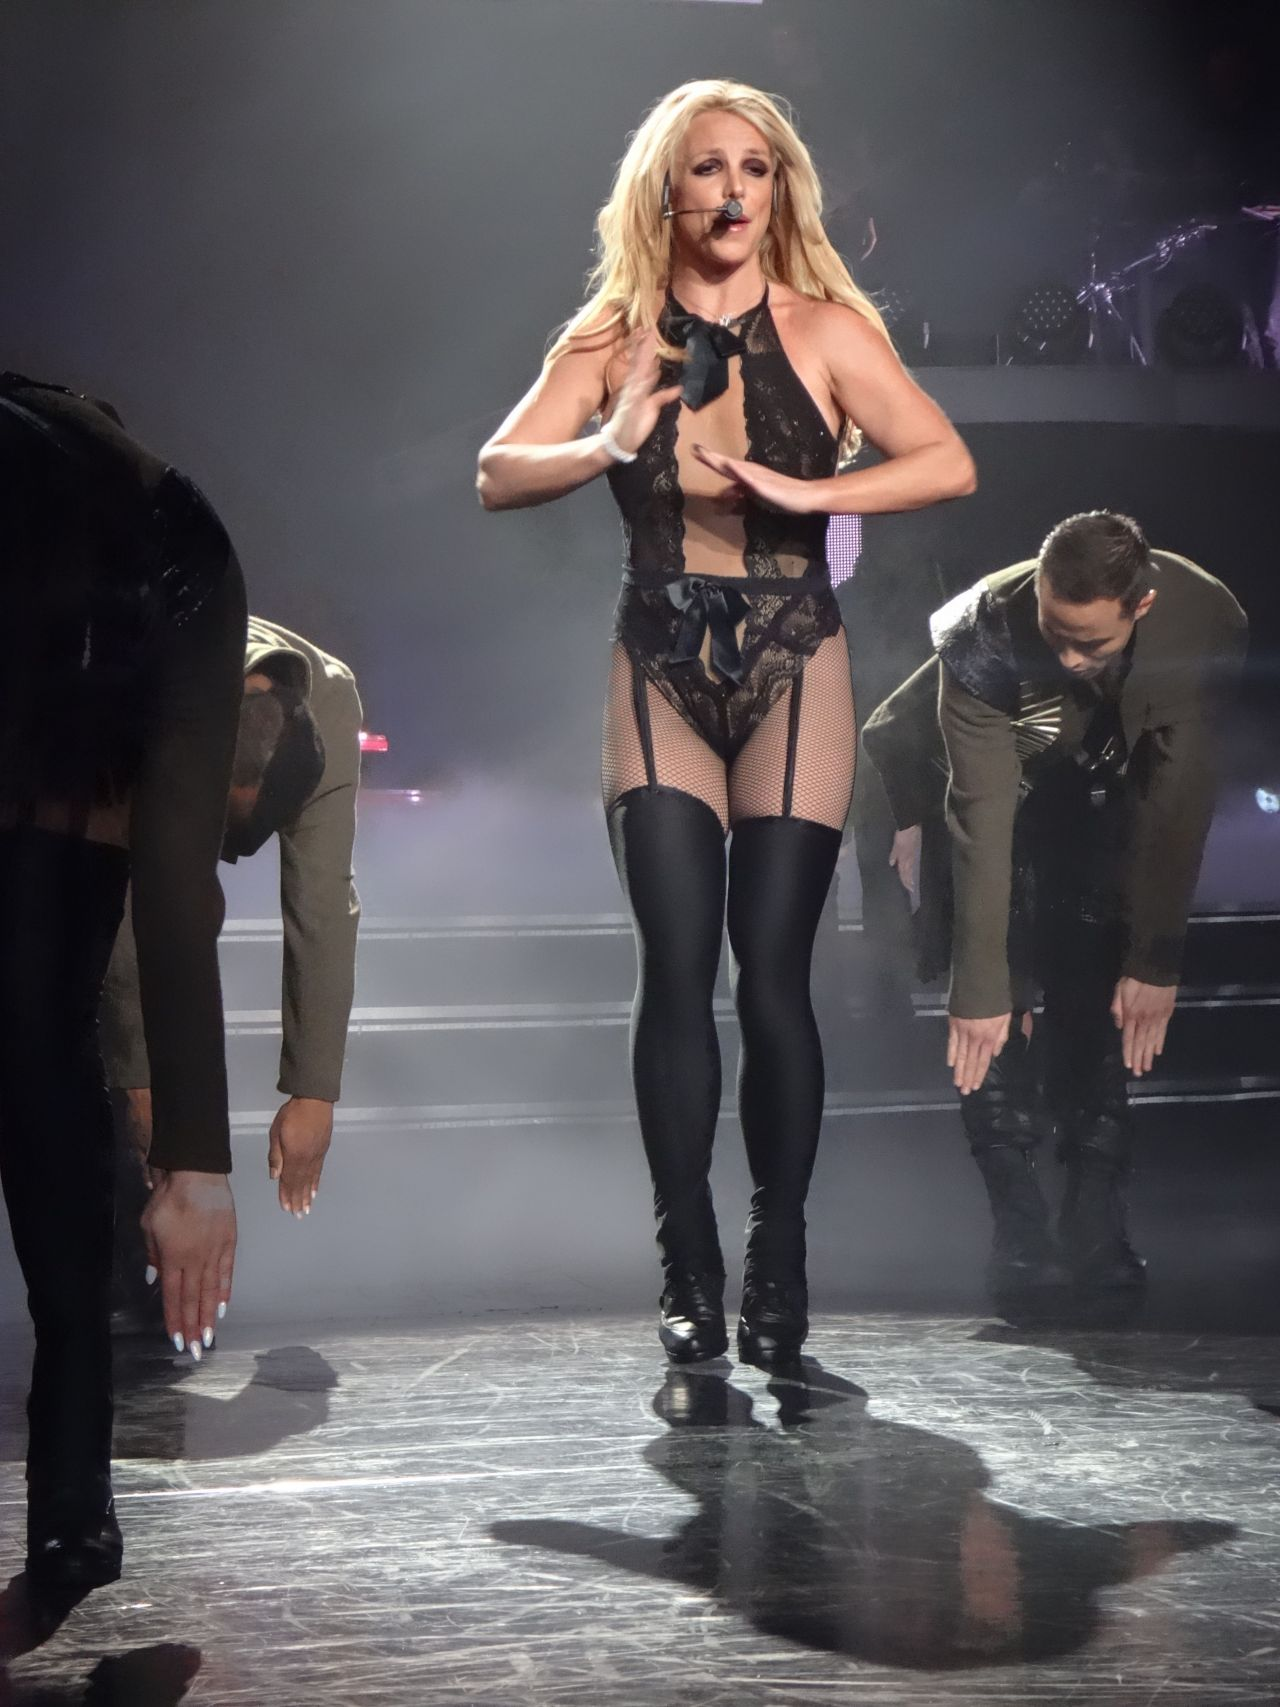 Britney Spears Archives - Positive Celebrity News and Gossip